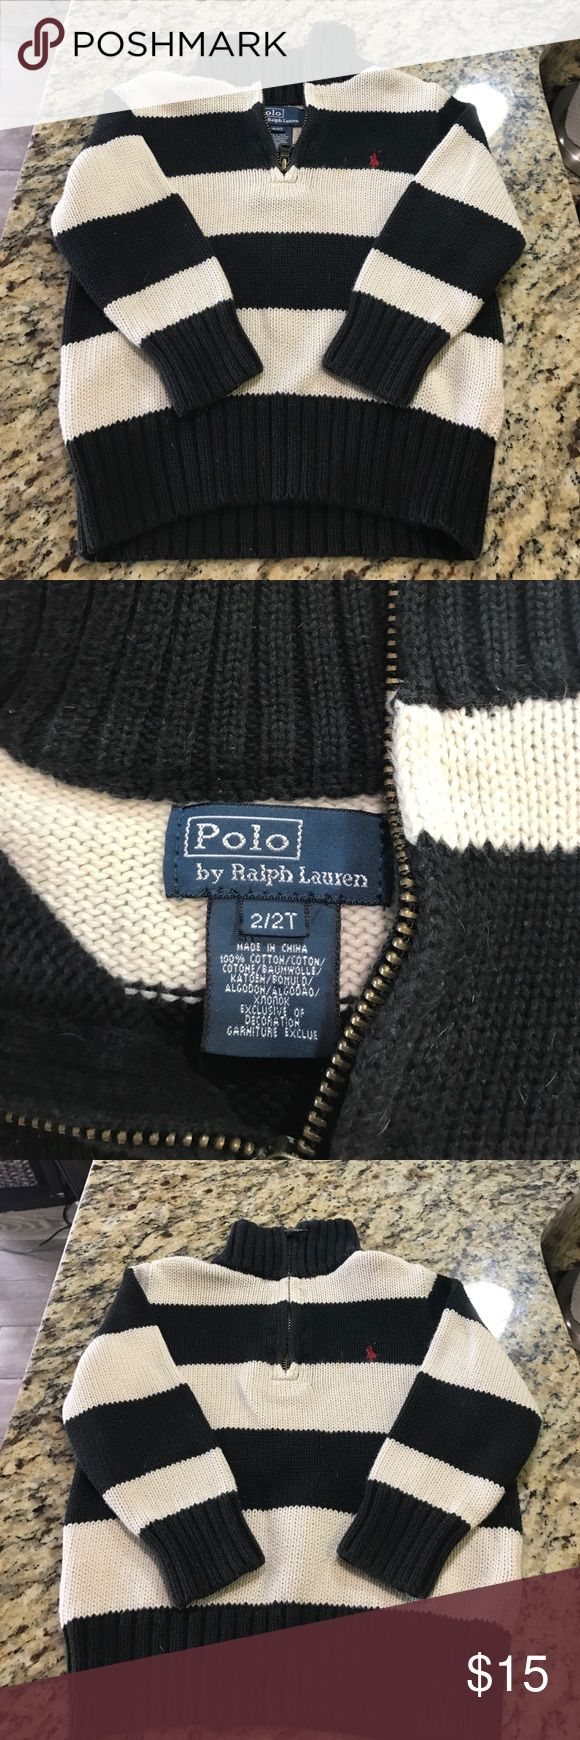 Polo by Ralph Lauren Striped Zip-Up Polo by Ralph Lauren Striped Zip-Up Sweater. Worn but still in excellent condition. Navy and cream stripes. Polo by Ralph Lauren Shirts & Tops Sweaters